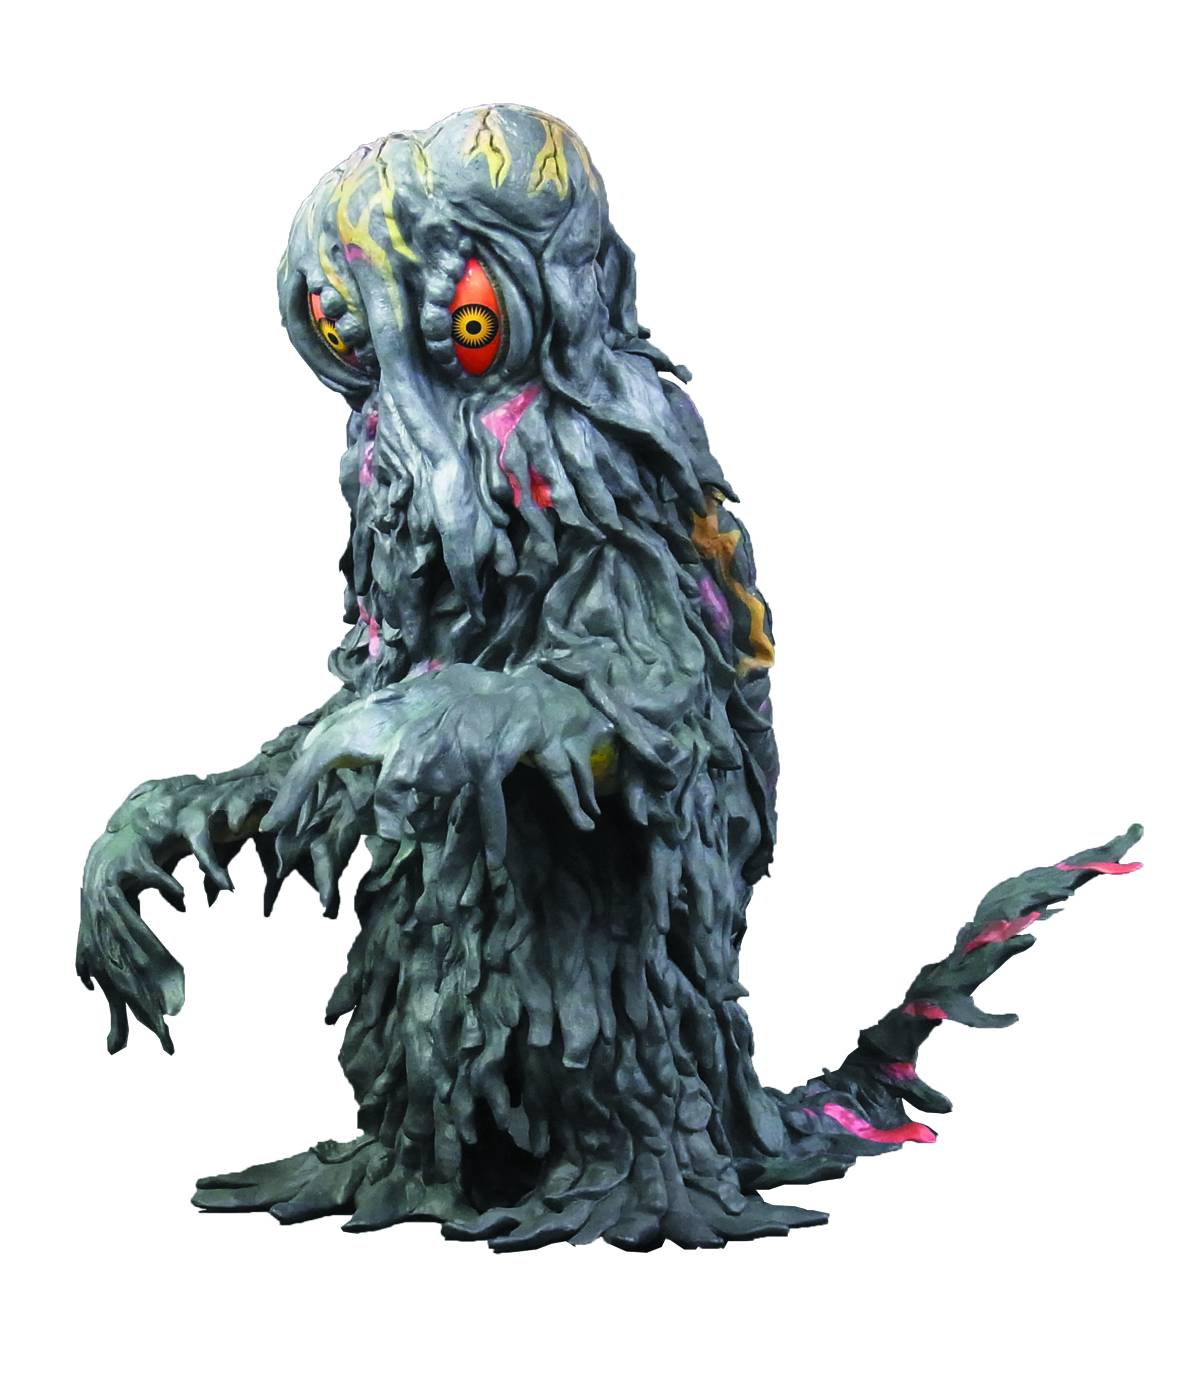 New Previews Exclusive Godzilla Figures In May Issue - The ...